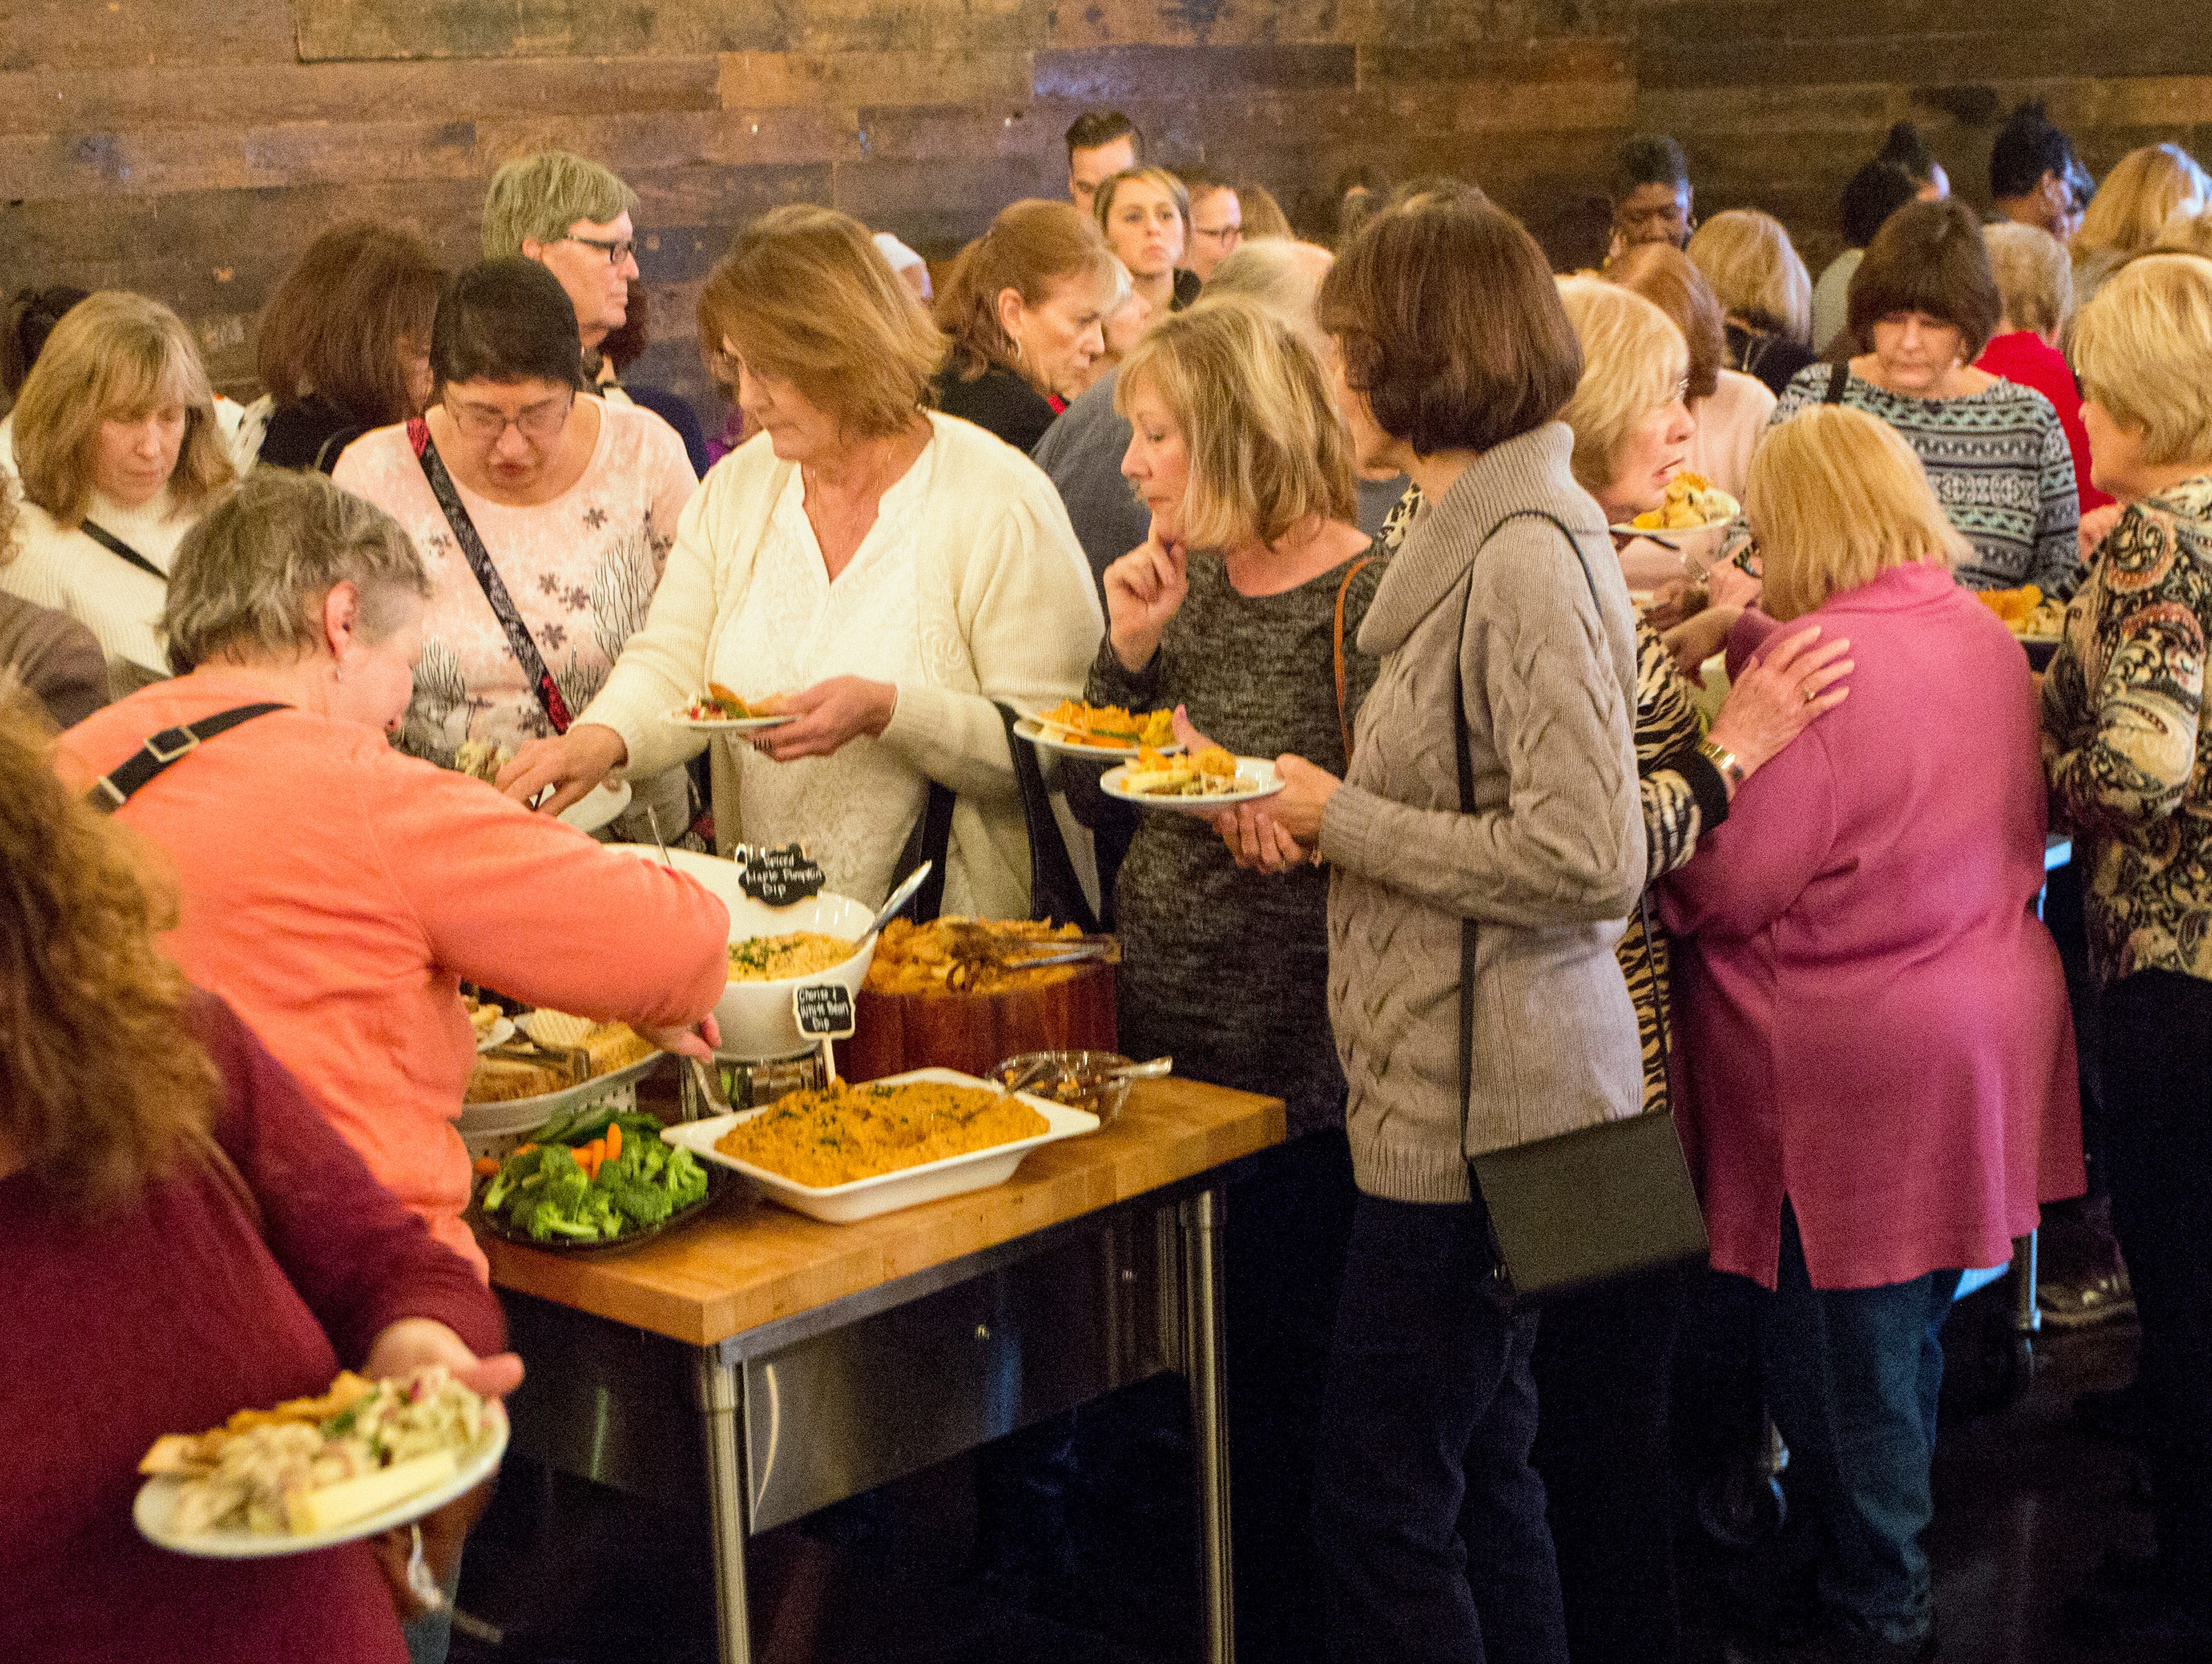 The sold-out crowd enjoys appetizers before the live cooking demonstrations during the Whisked event at the Great Lakes Culinary Center in Southfield, Mich., Sunday, Nov. 18, 2018.